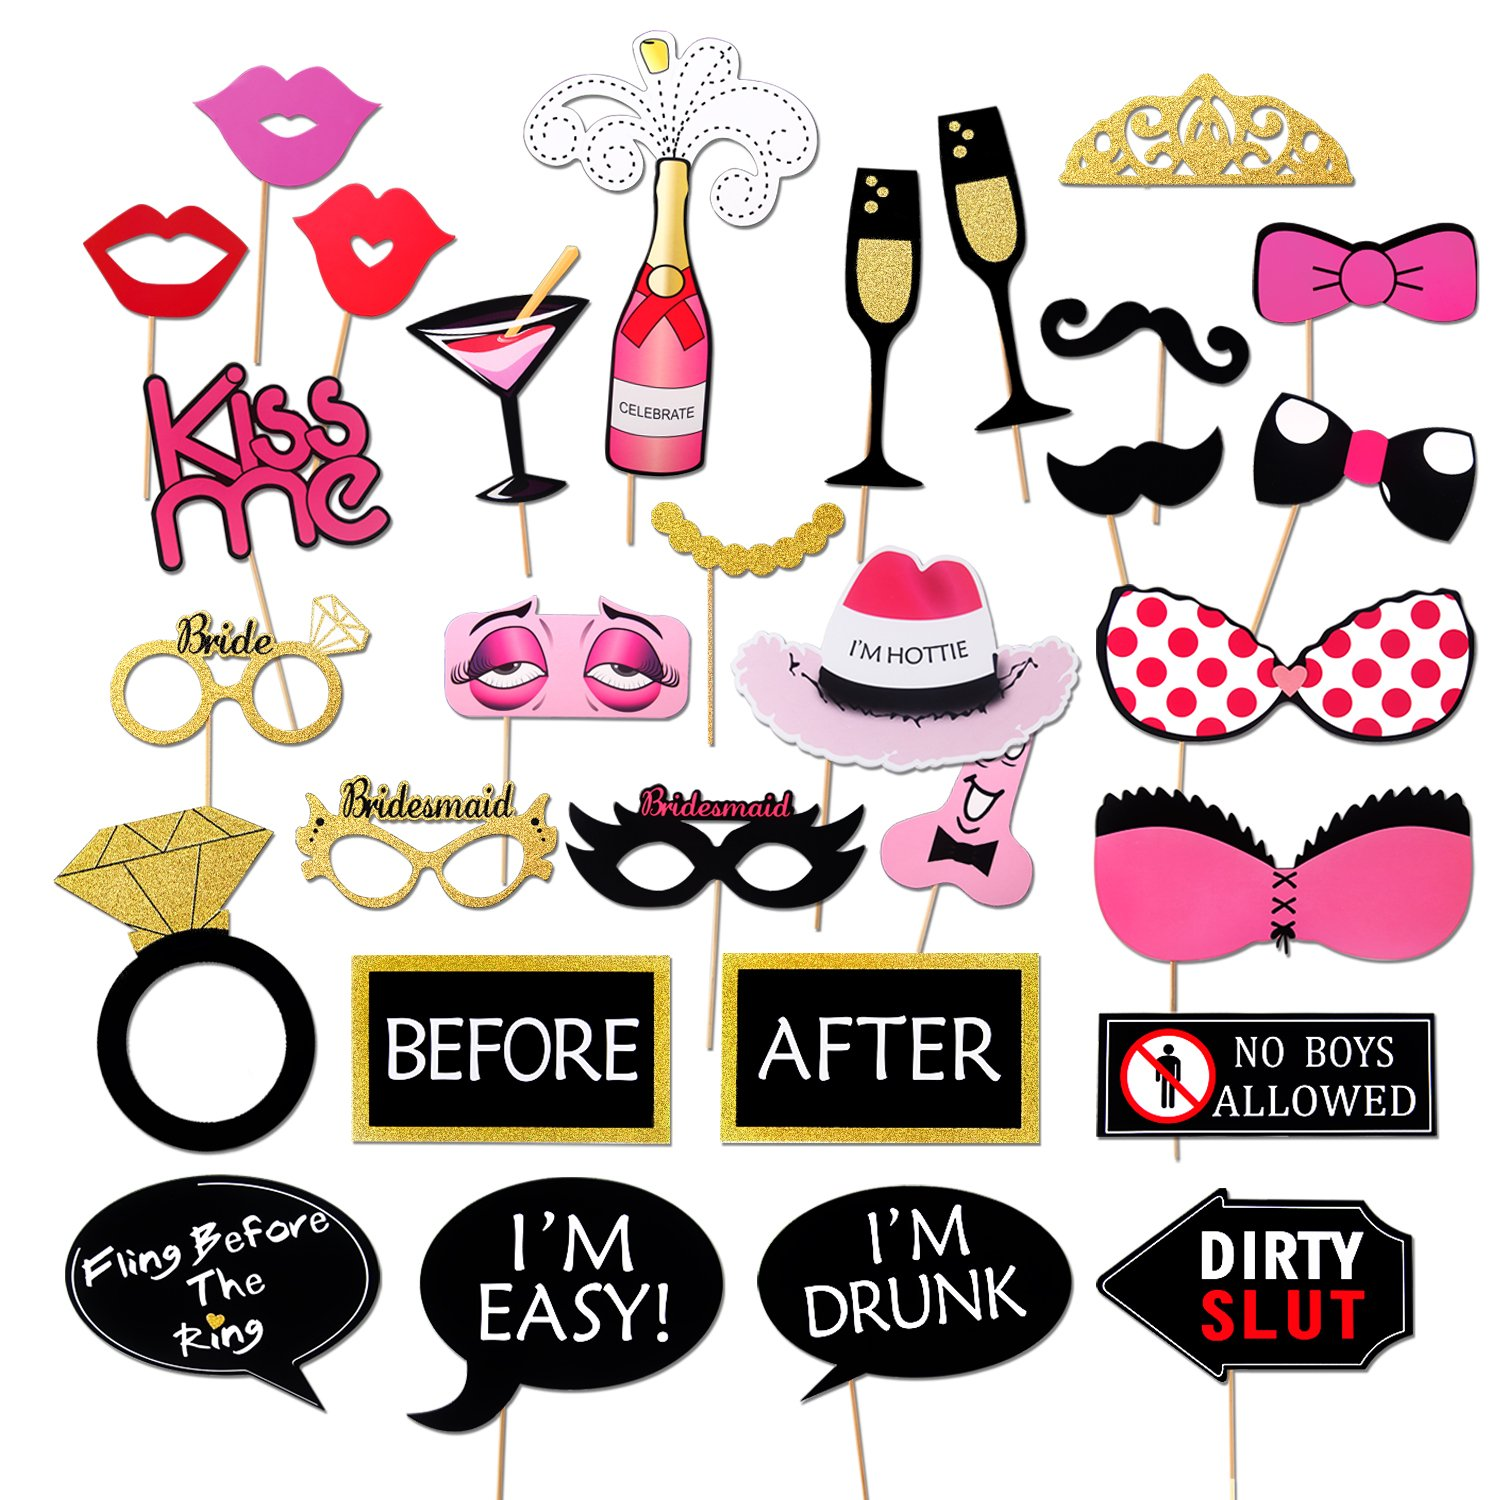 Amazon.com: Girls Night Out - Bachelorette Party Photo Booth Props ...